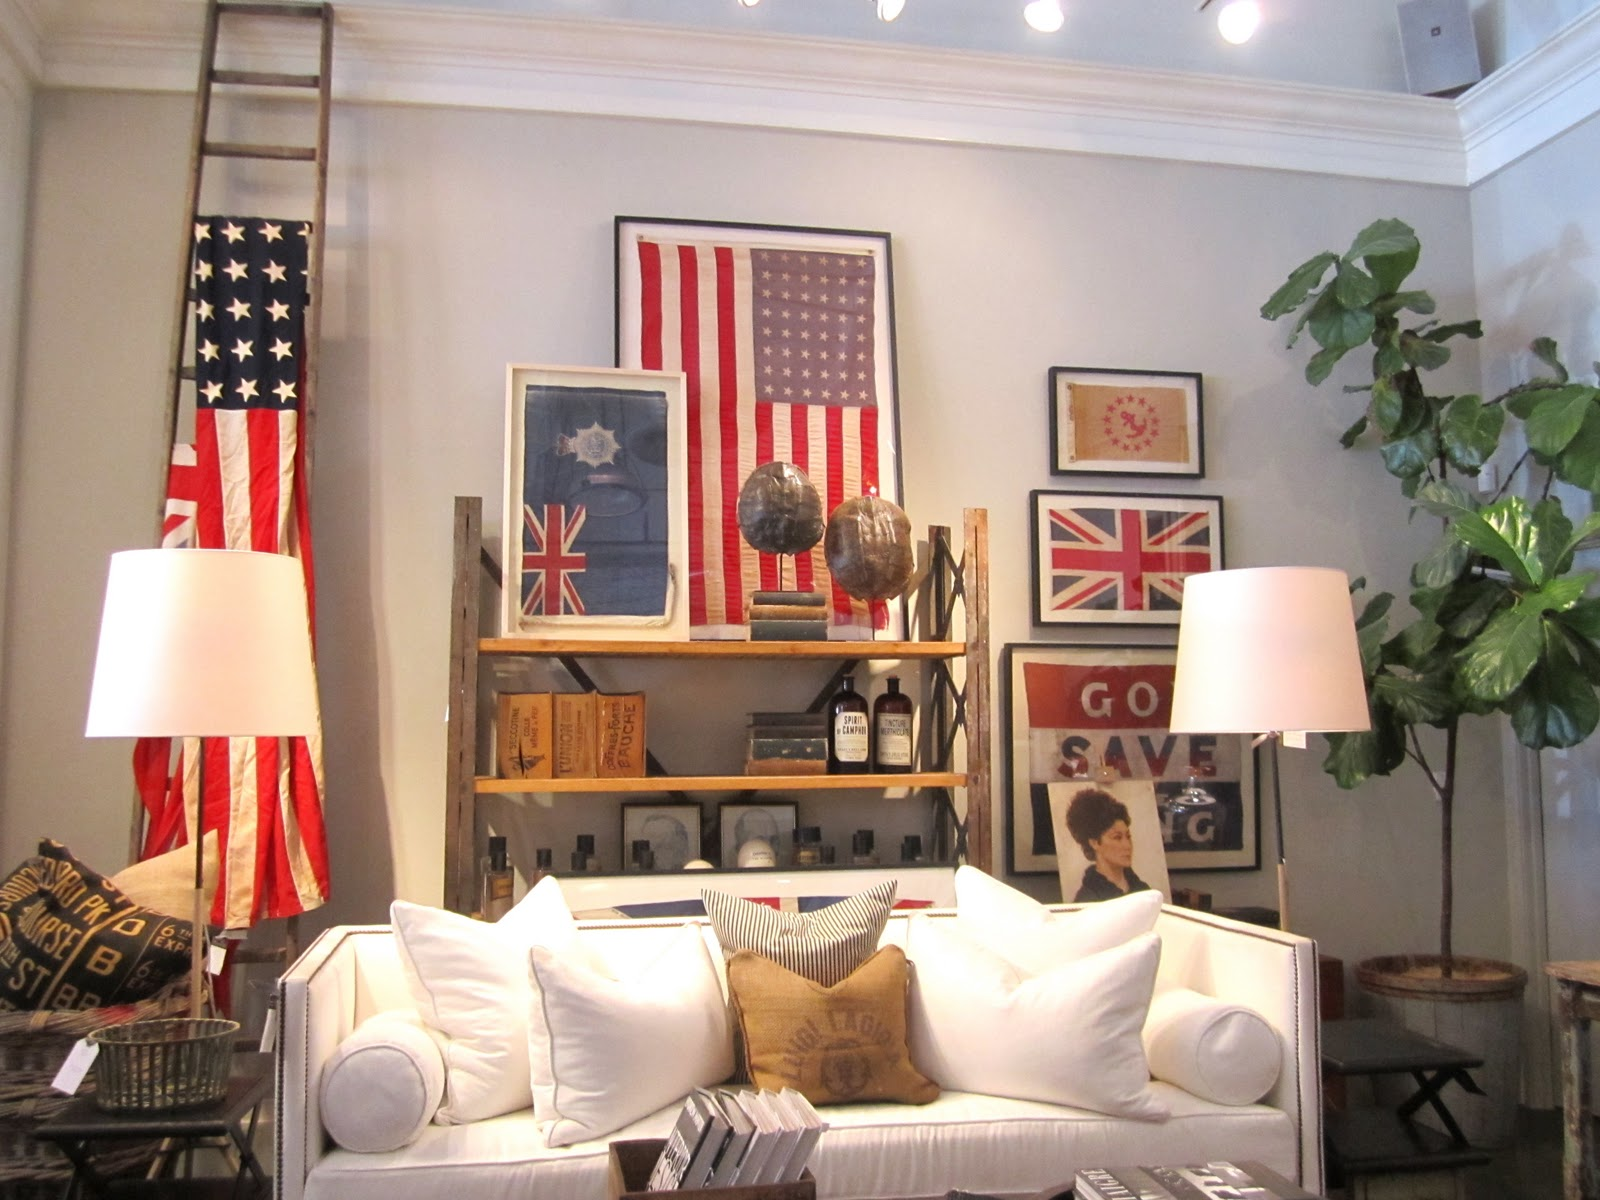 Http Www Classiccasualhome Com 2011 09 Decorating With Vintage Flags Html